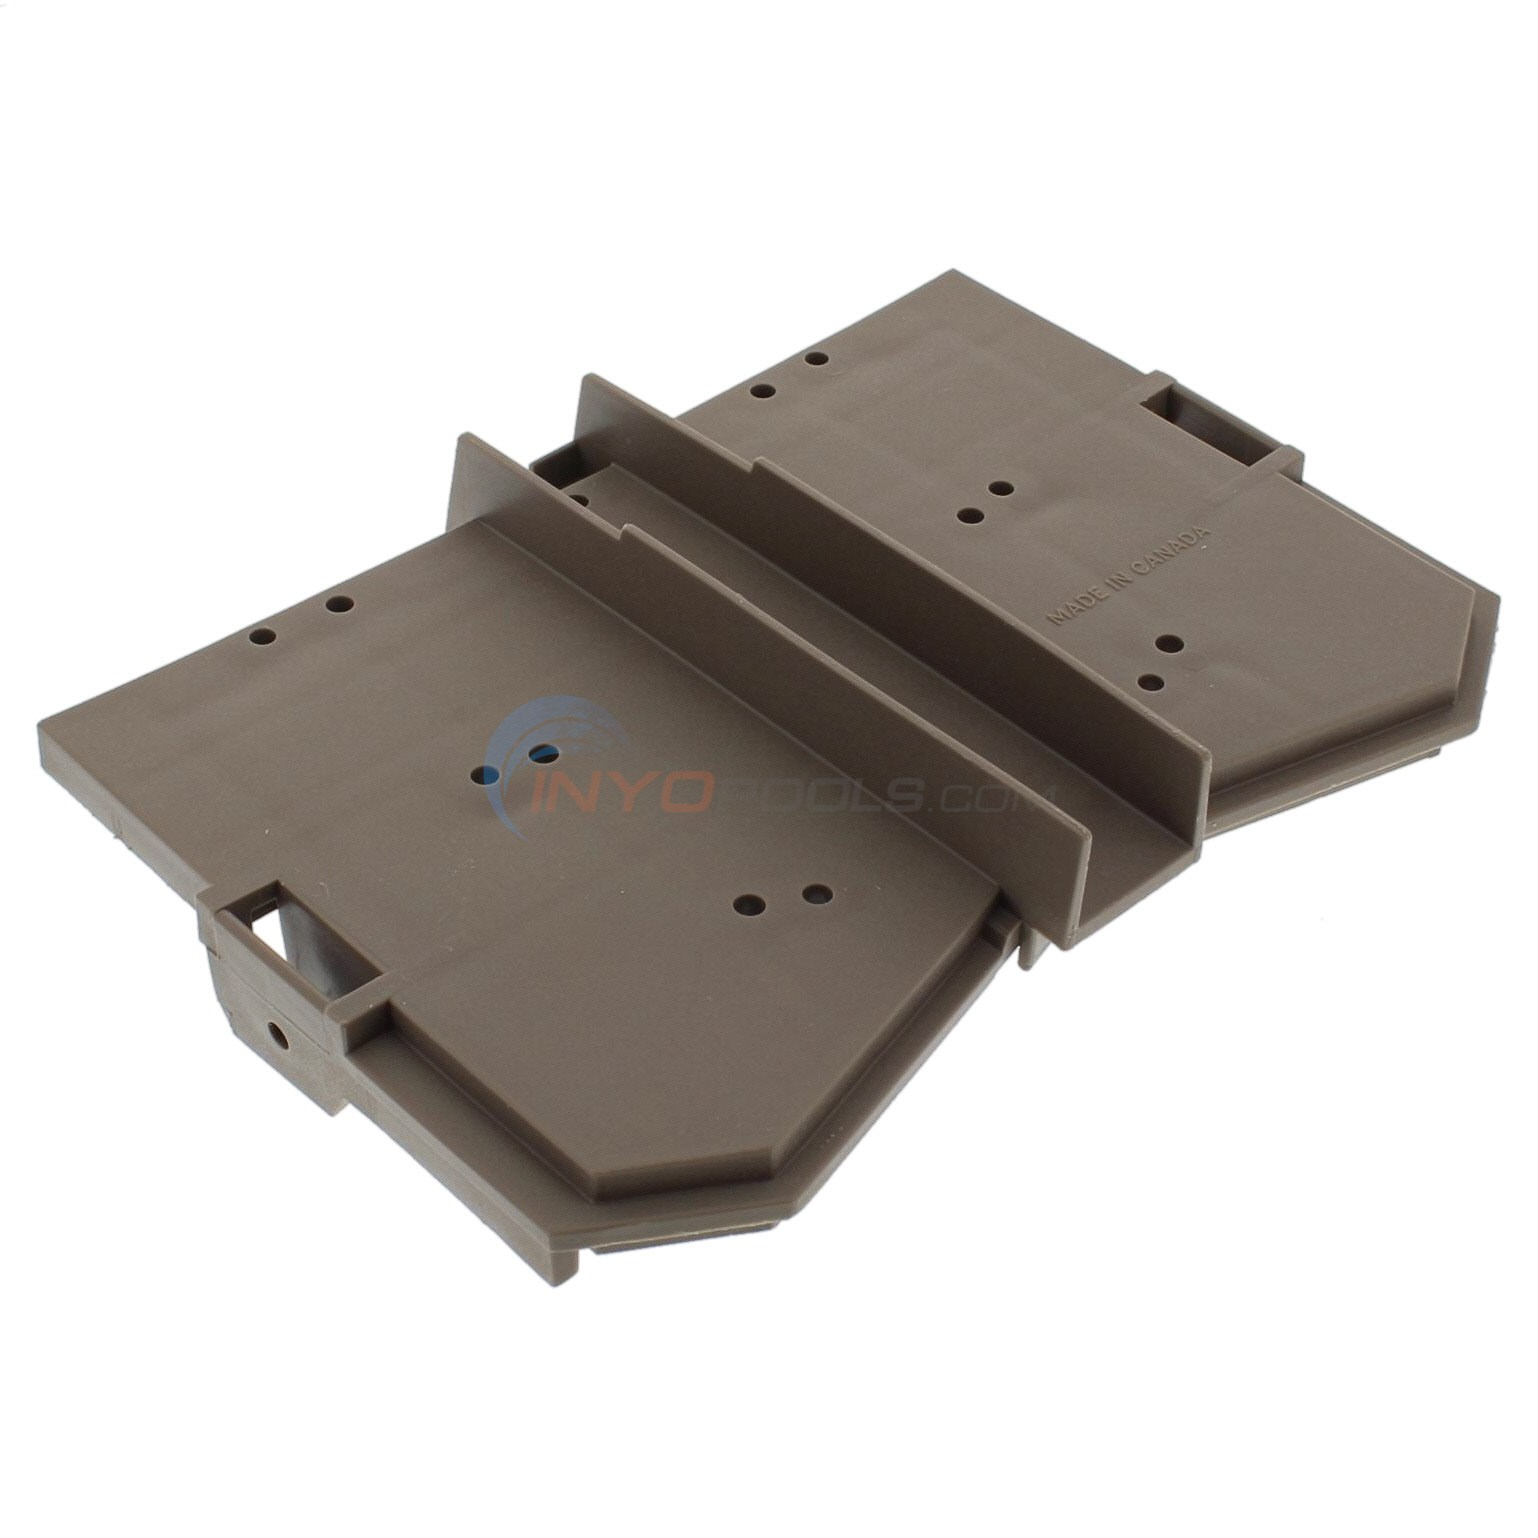 Top Plate (Single)